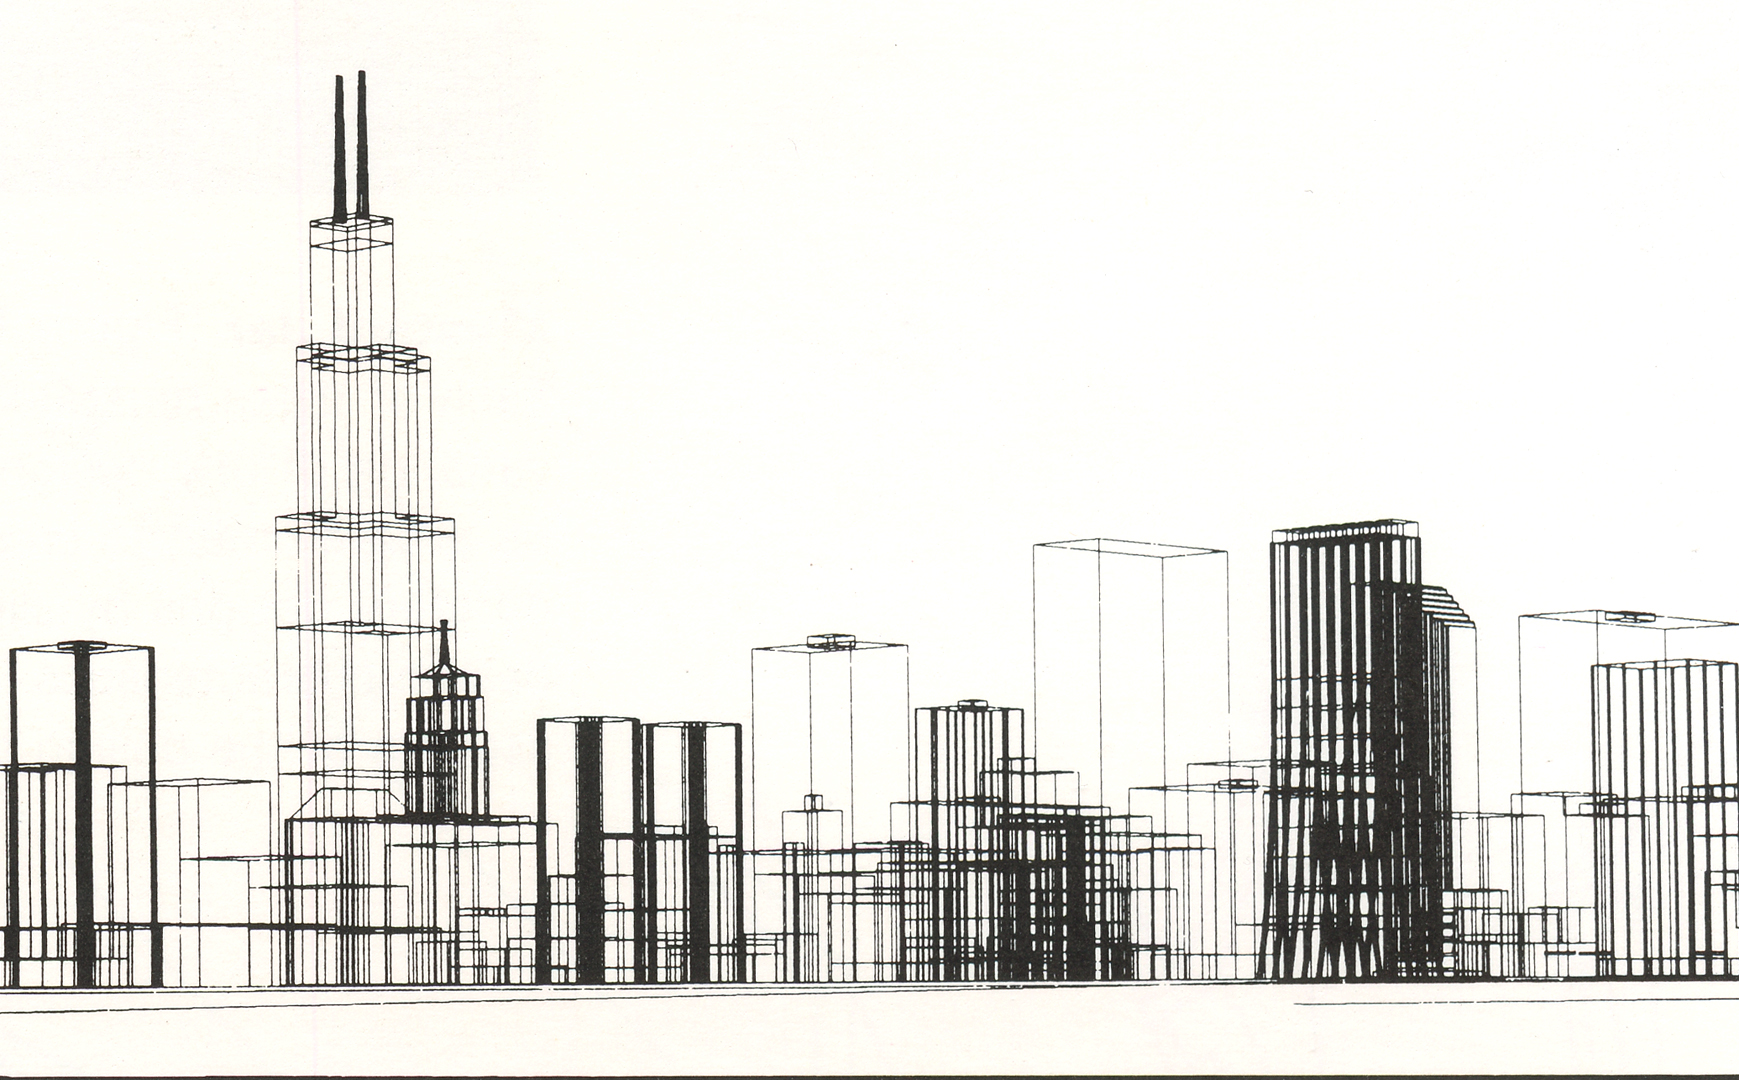 ©, Skidmore, Owings and Merrill